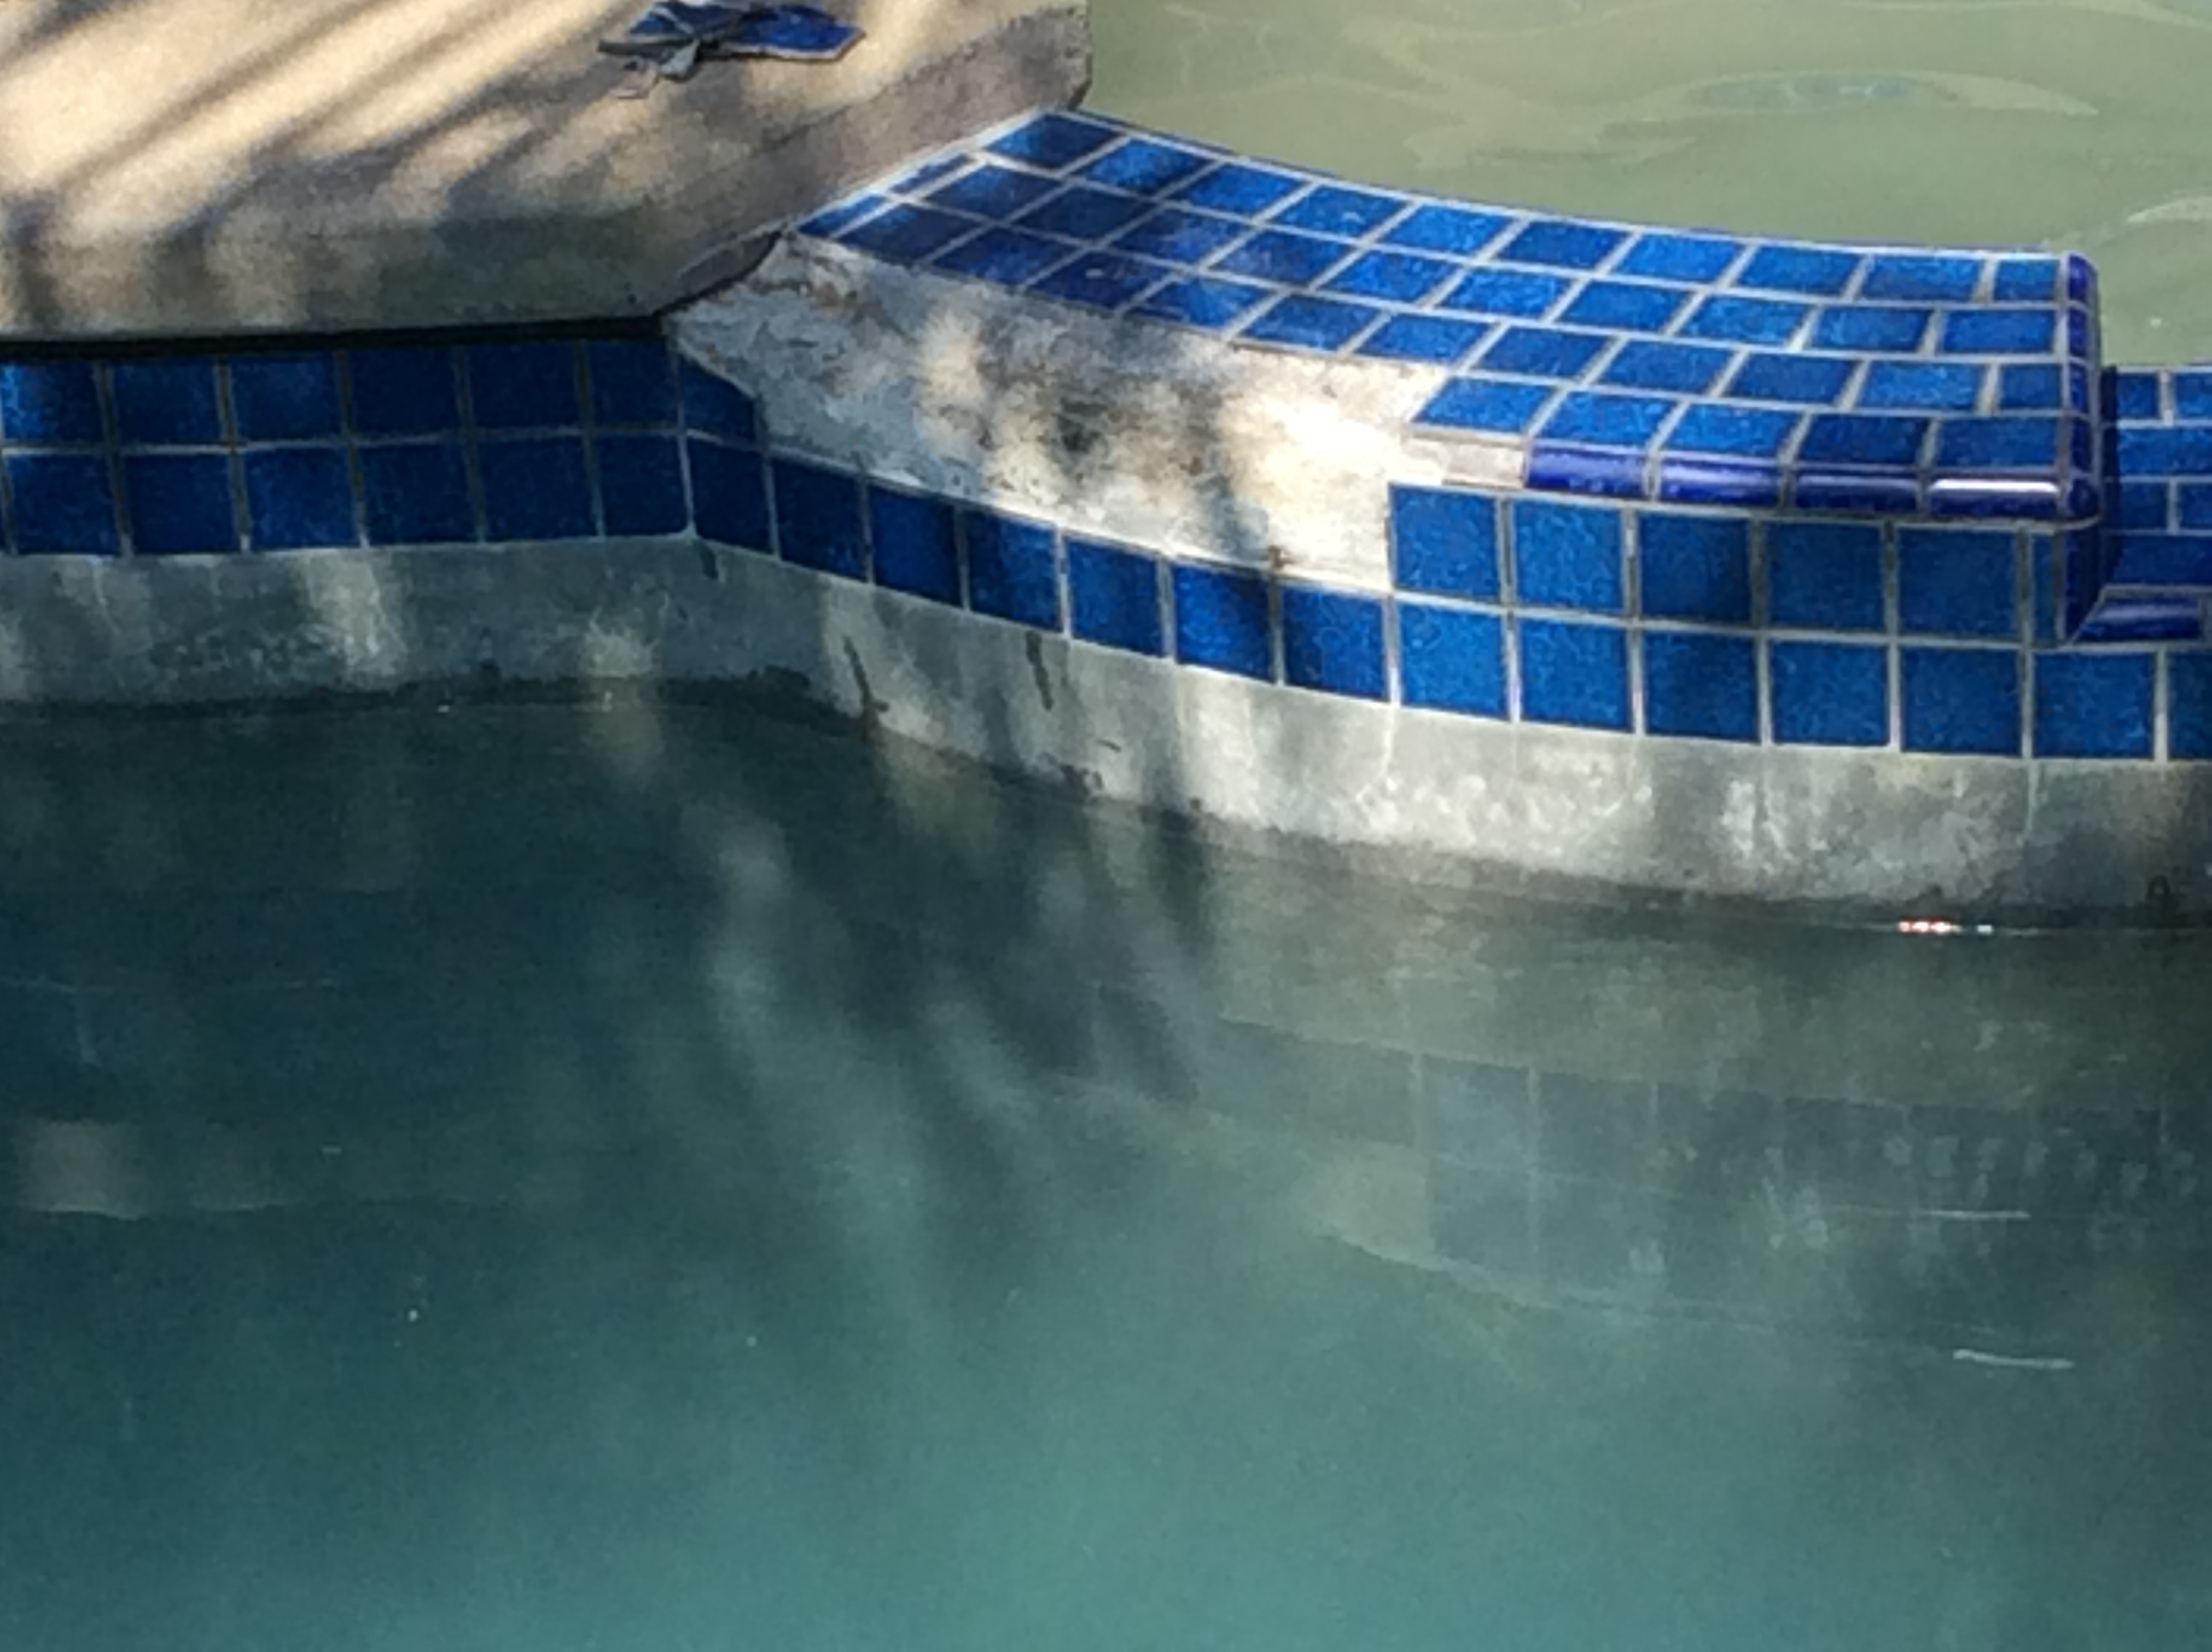 Swimming Pool Tile Repair - Hess Tile Cleaning